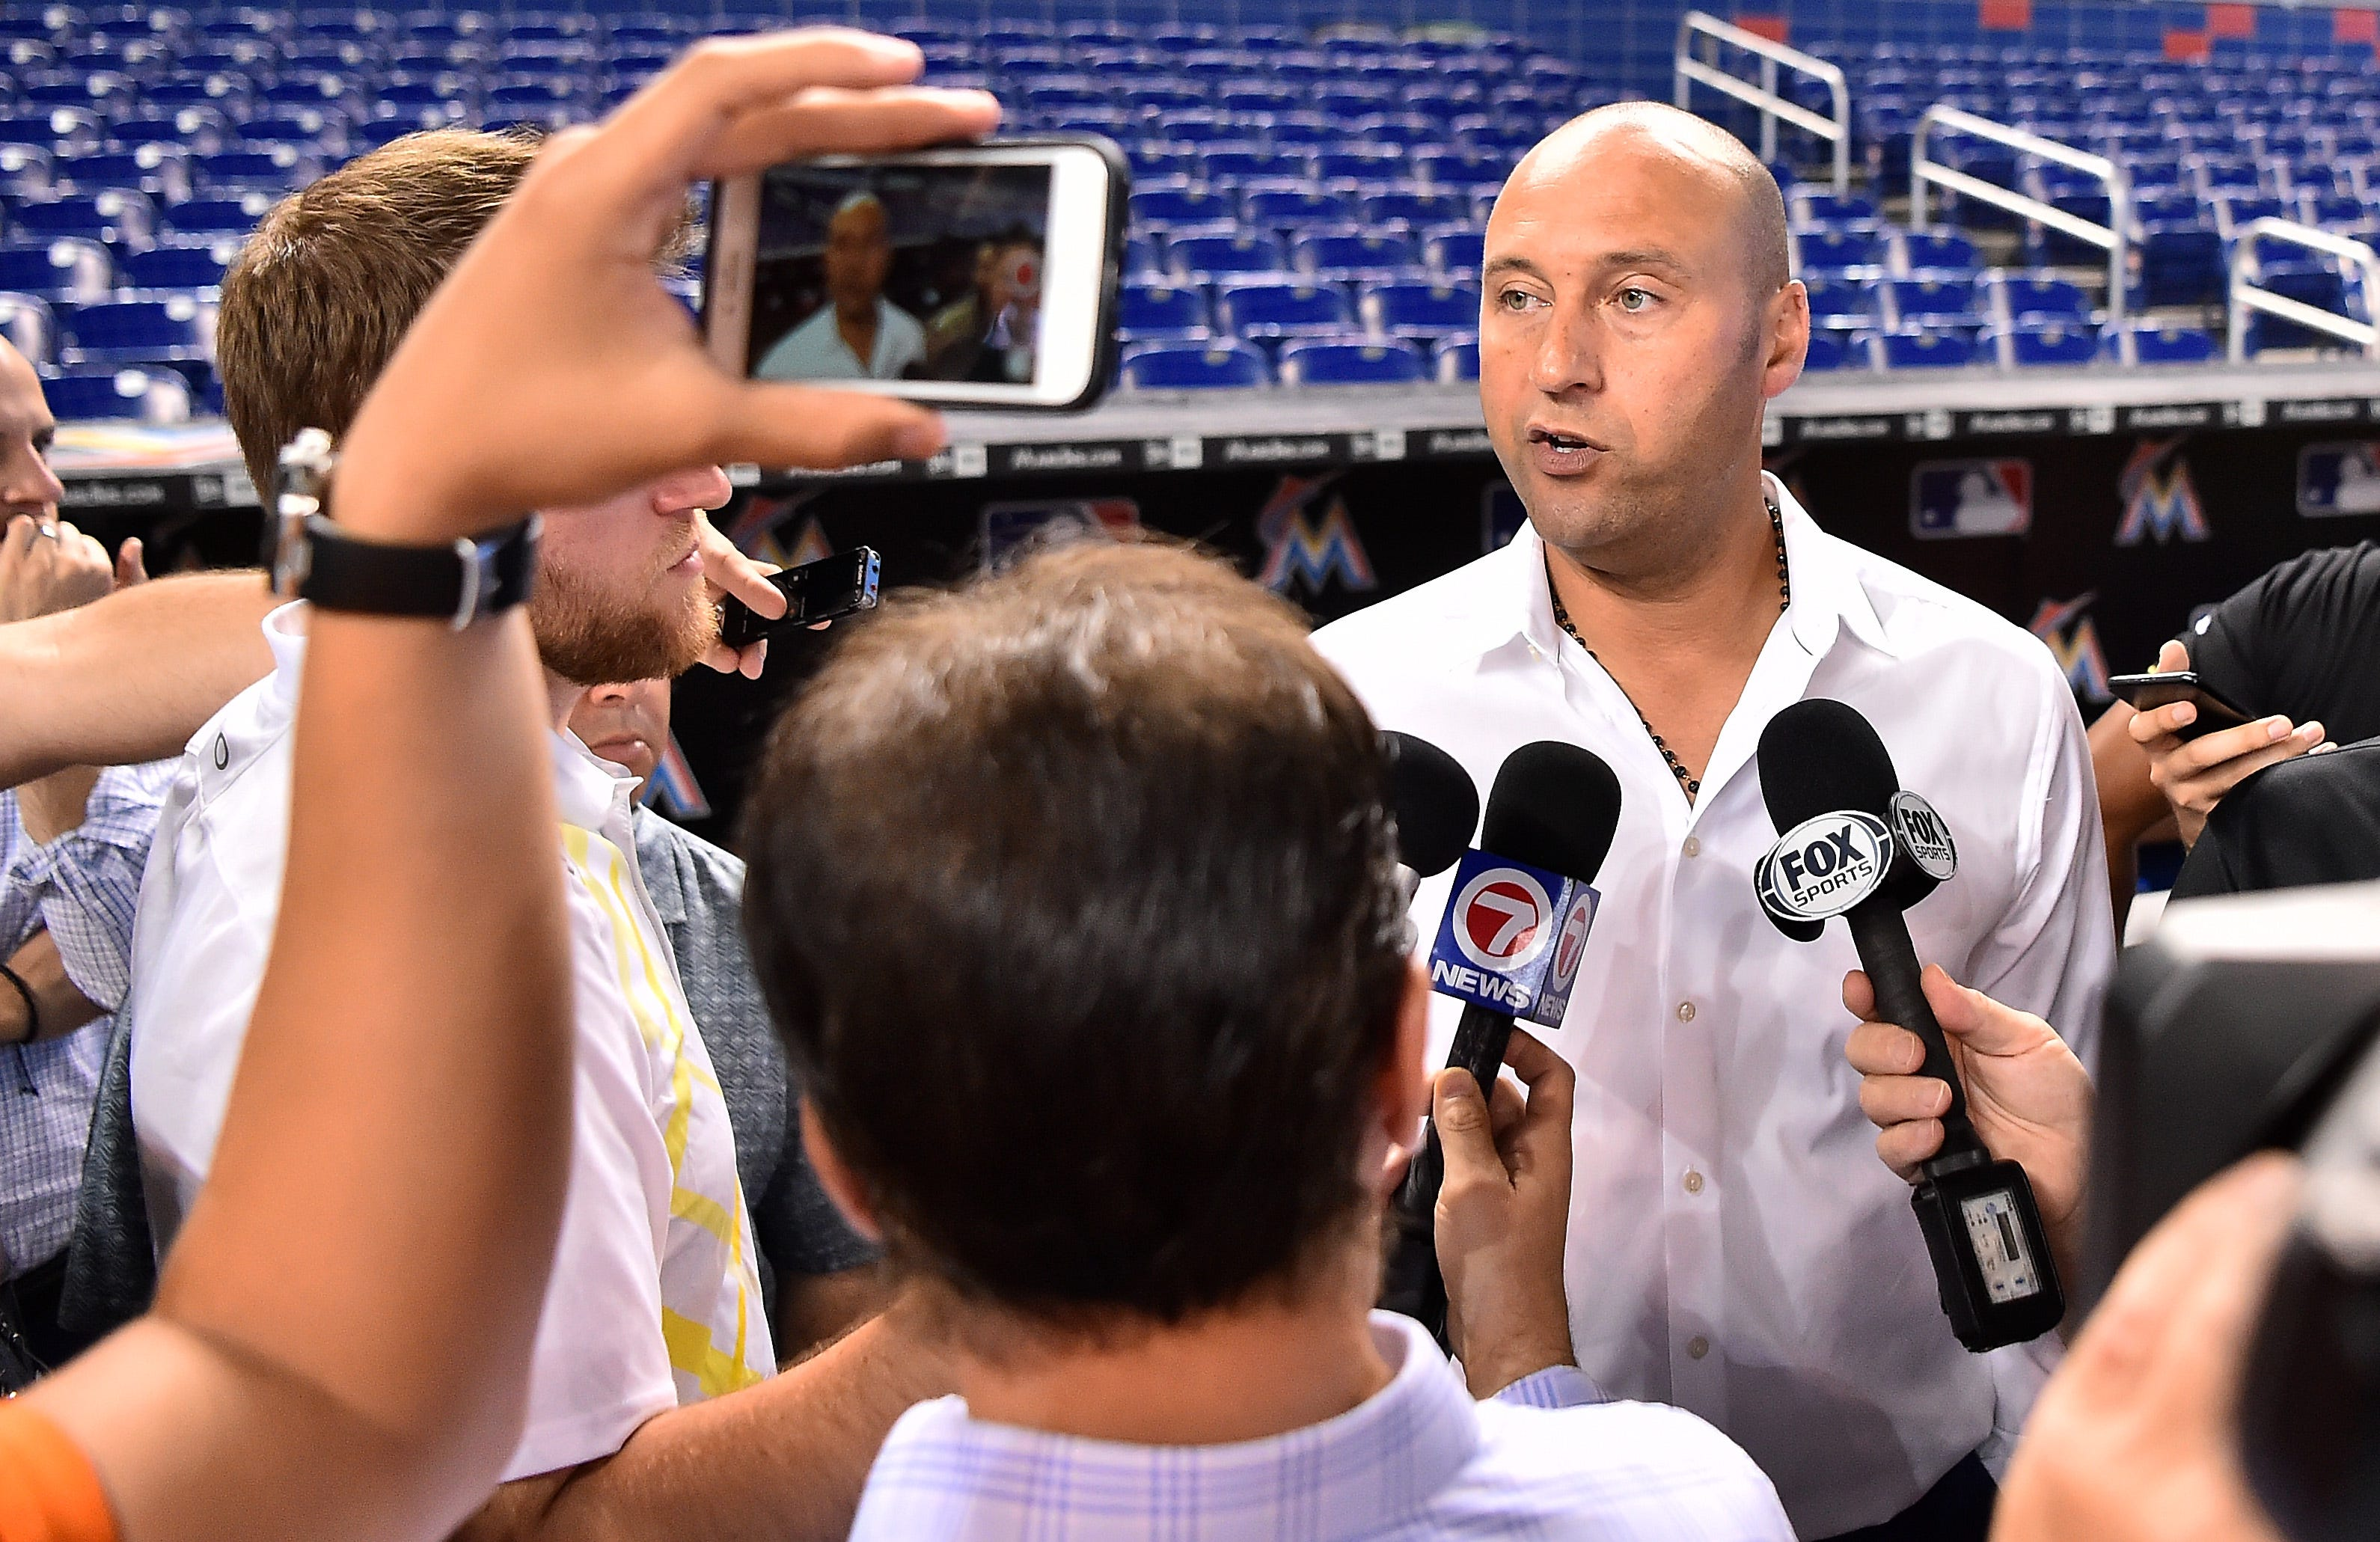 Marlins players, coaches, even CEO Derek Jeter, required to learn Spanish, per report